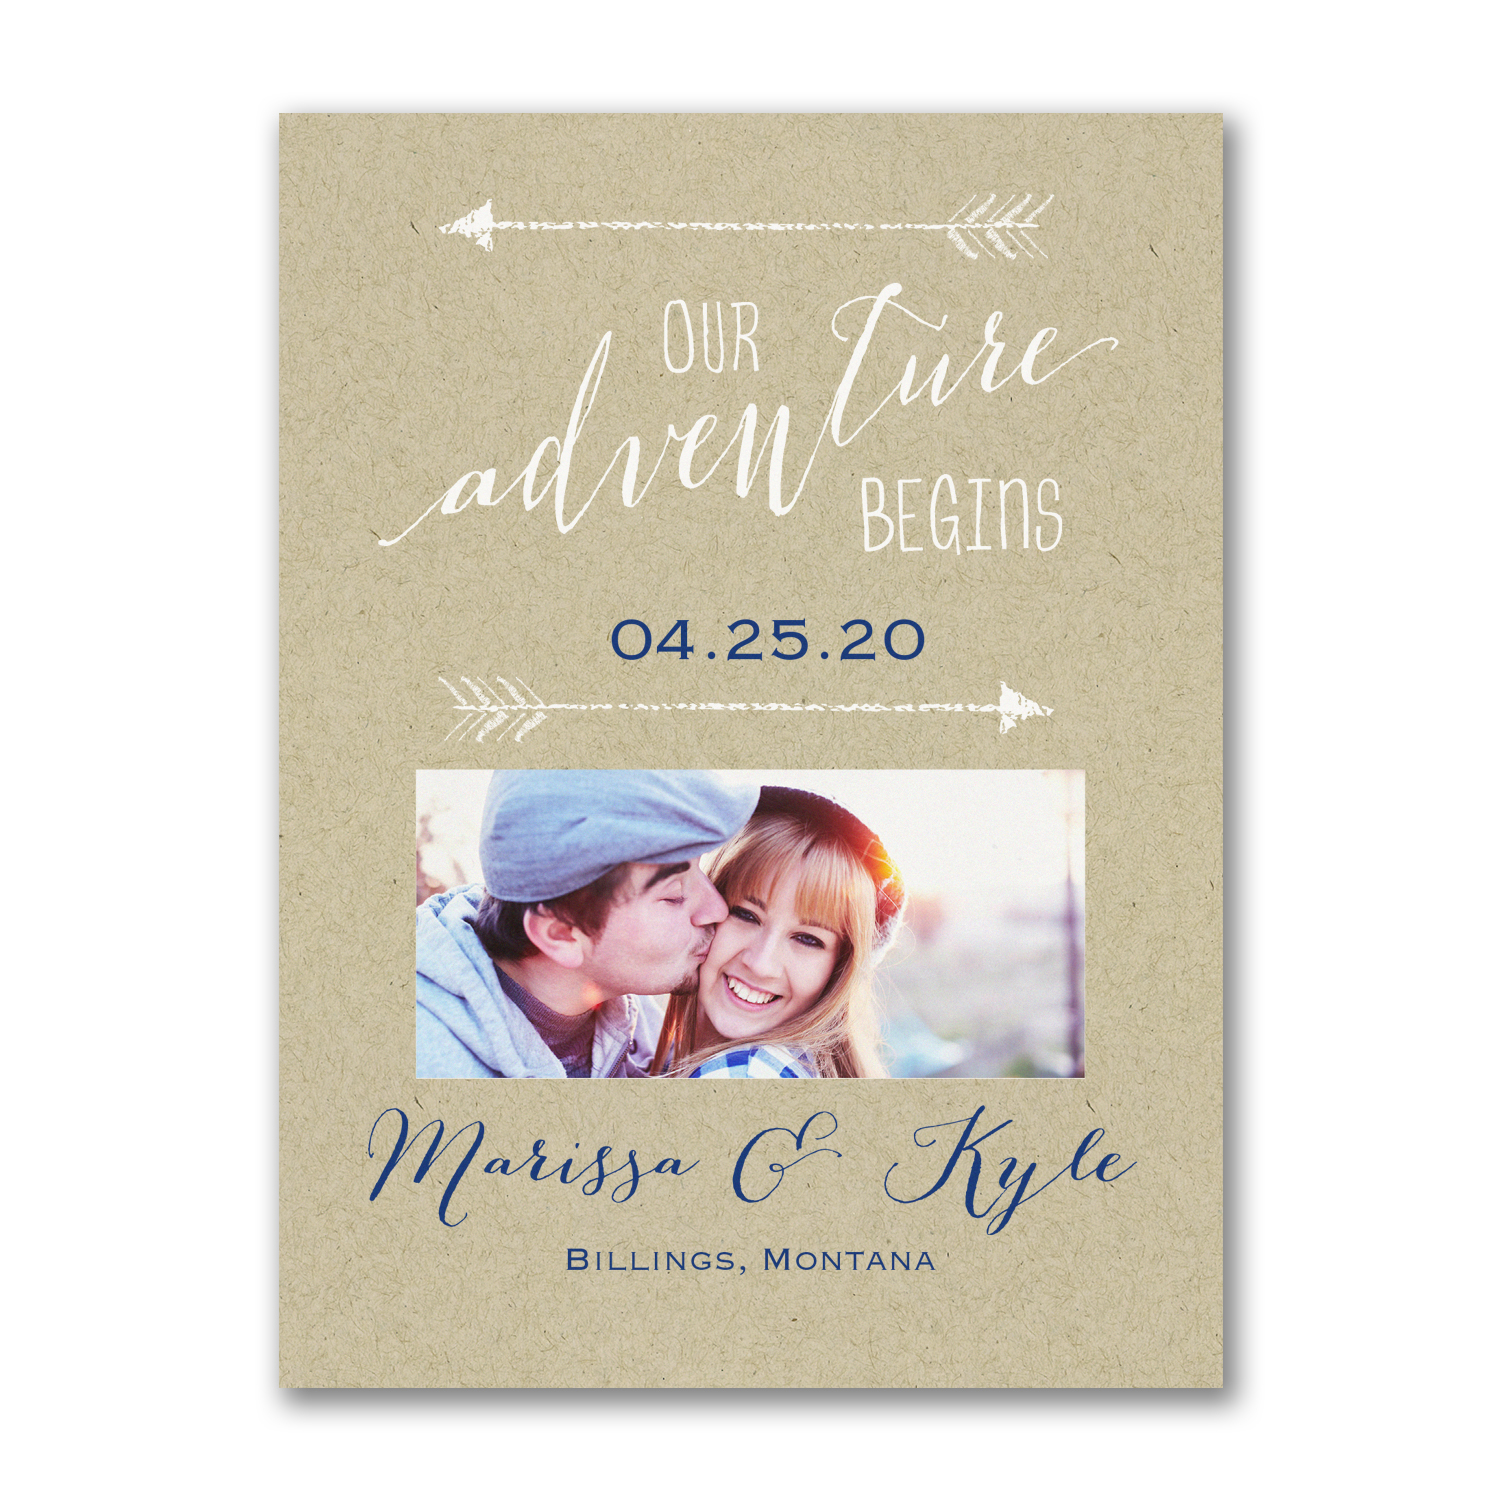 our adventure begins photo save the date kraft paper save the date